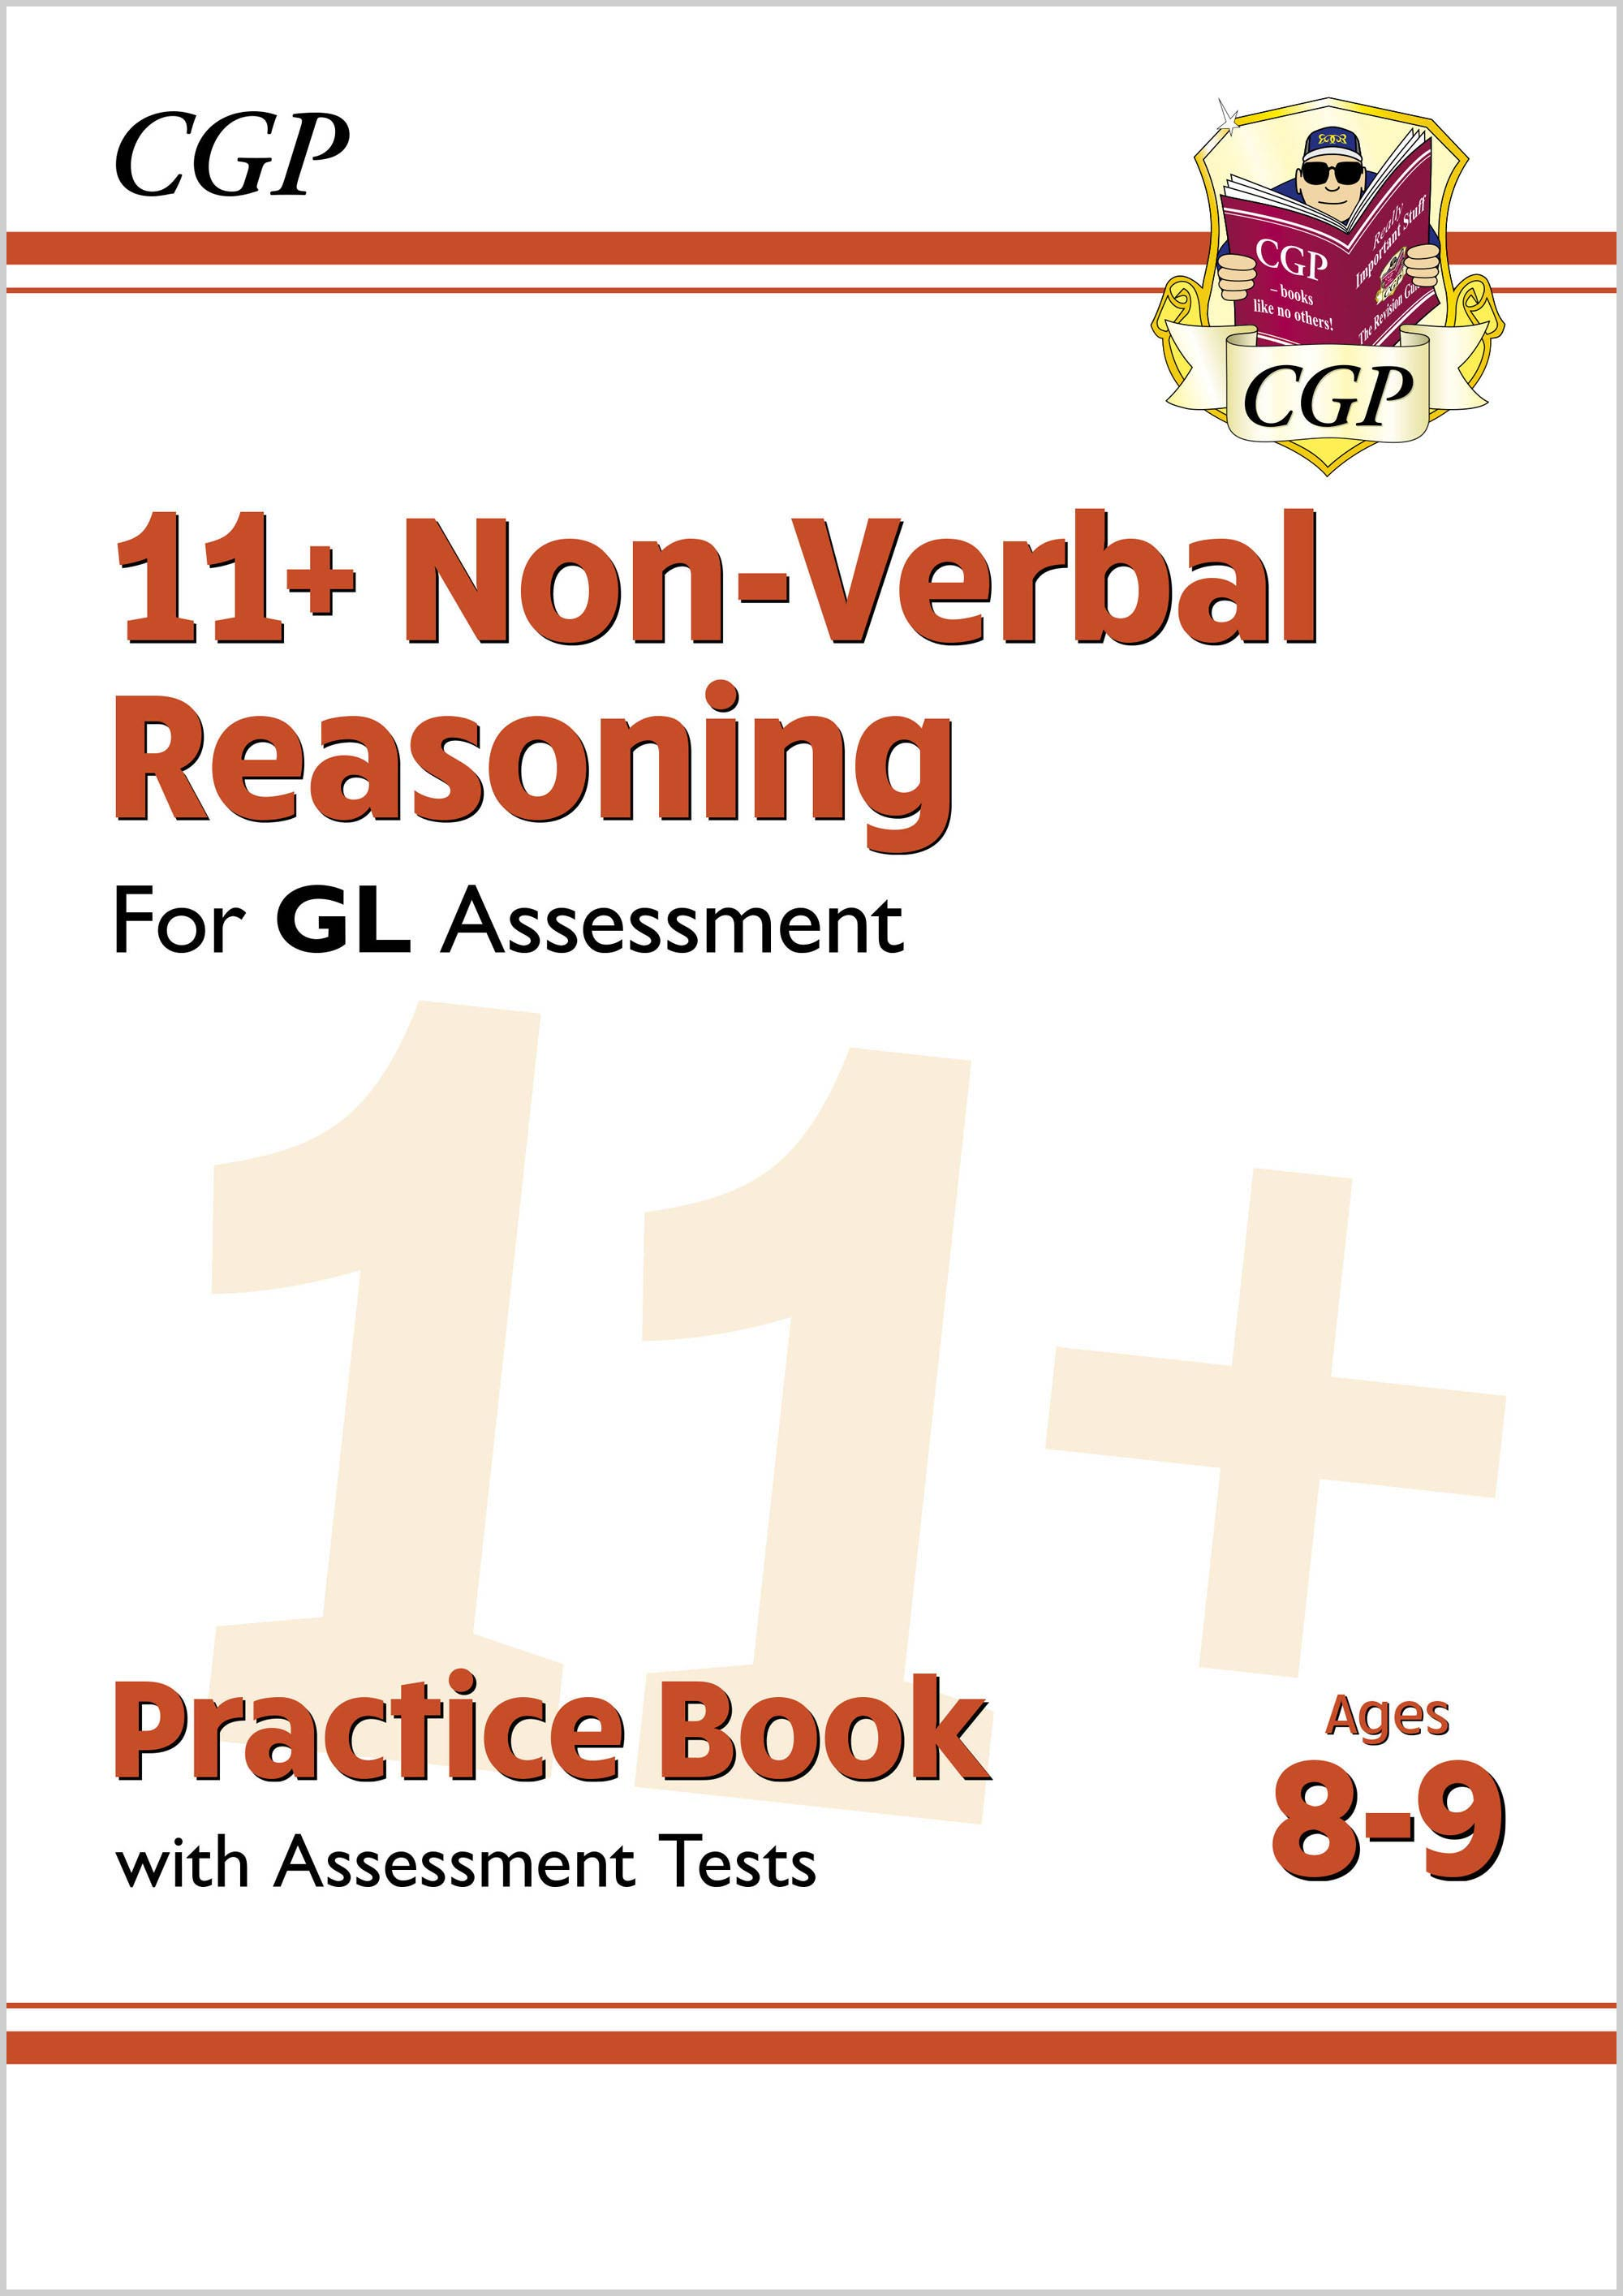 N4QE2DK - New 11+ GL Non-Verbal Reasoning Practice Book & Assessment Tests - Ages 8-9